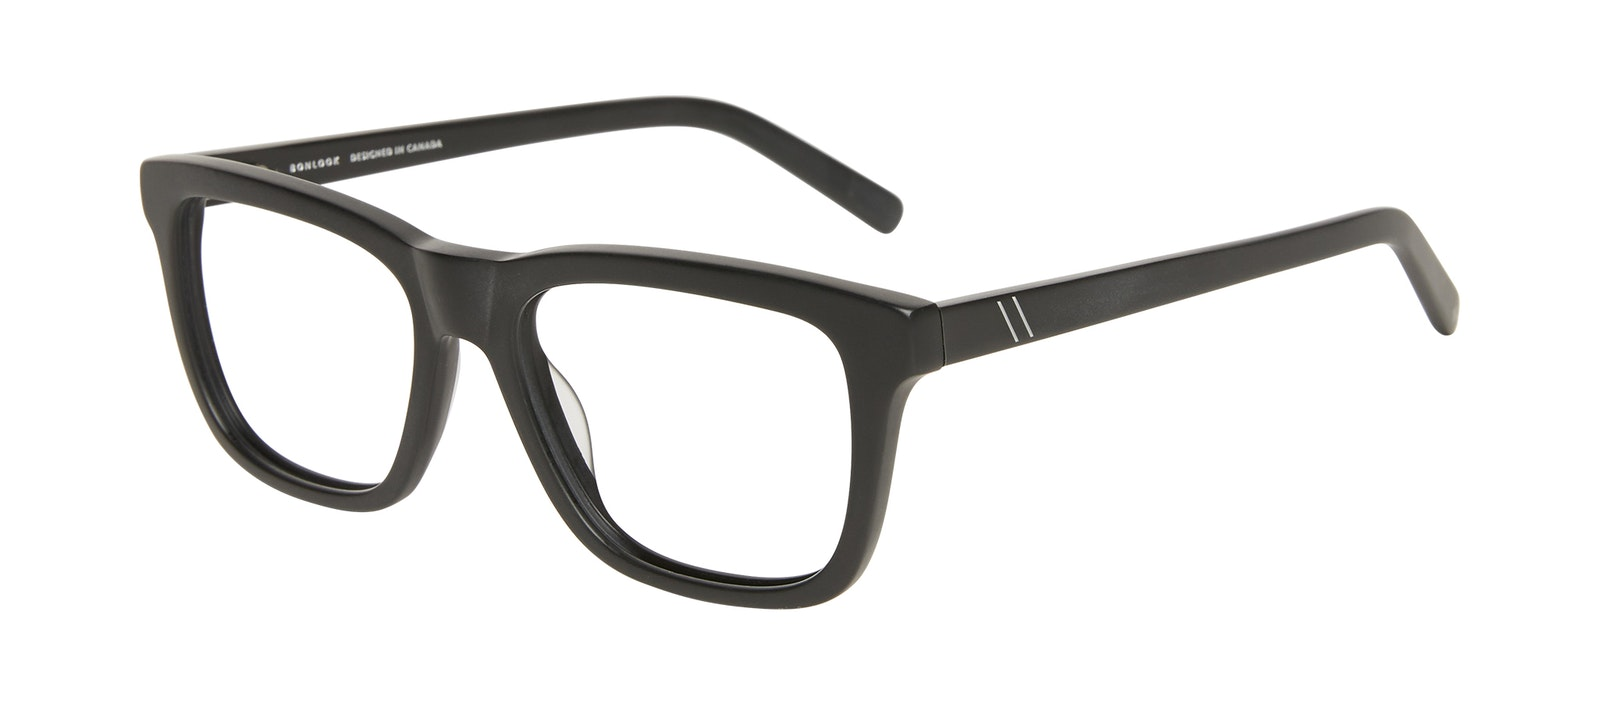 Affordable Fashion Glasses Square Eyeglasses Men Code Matte Black Tilt